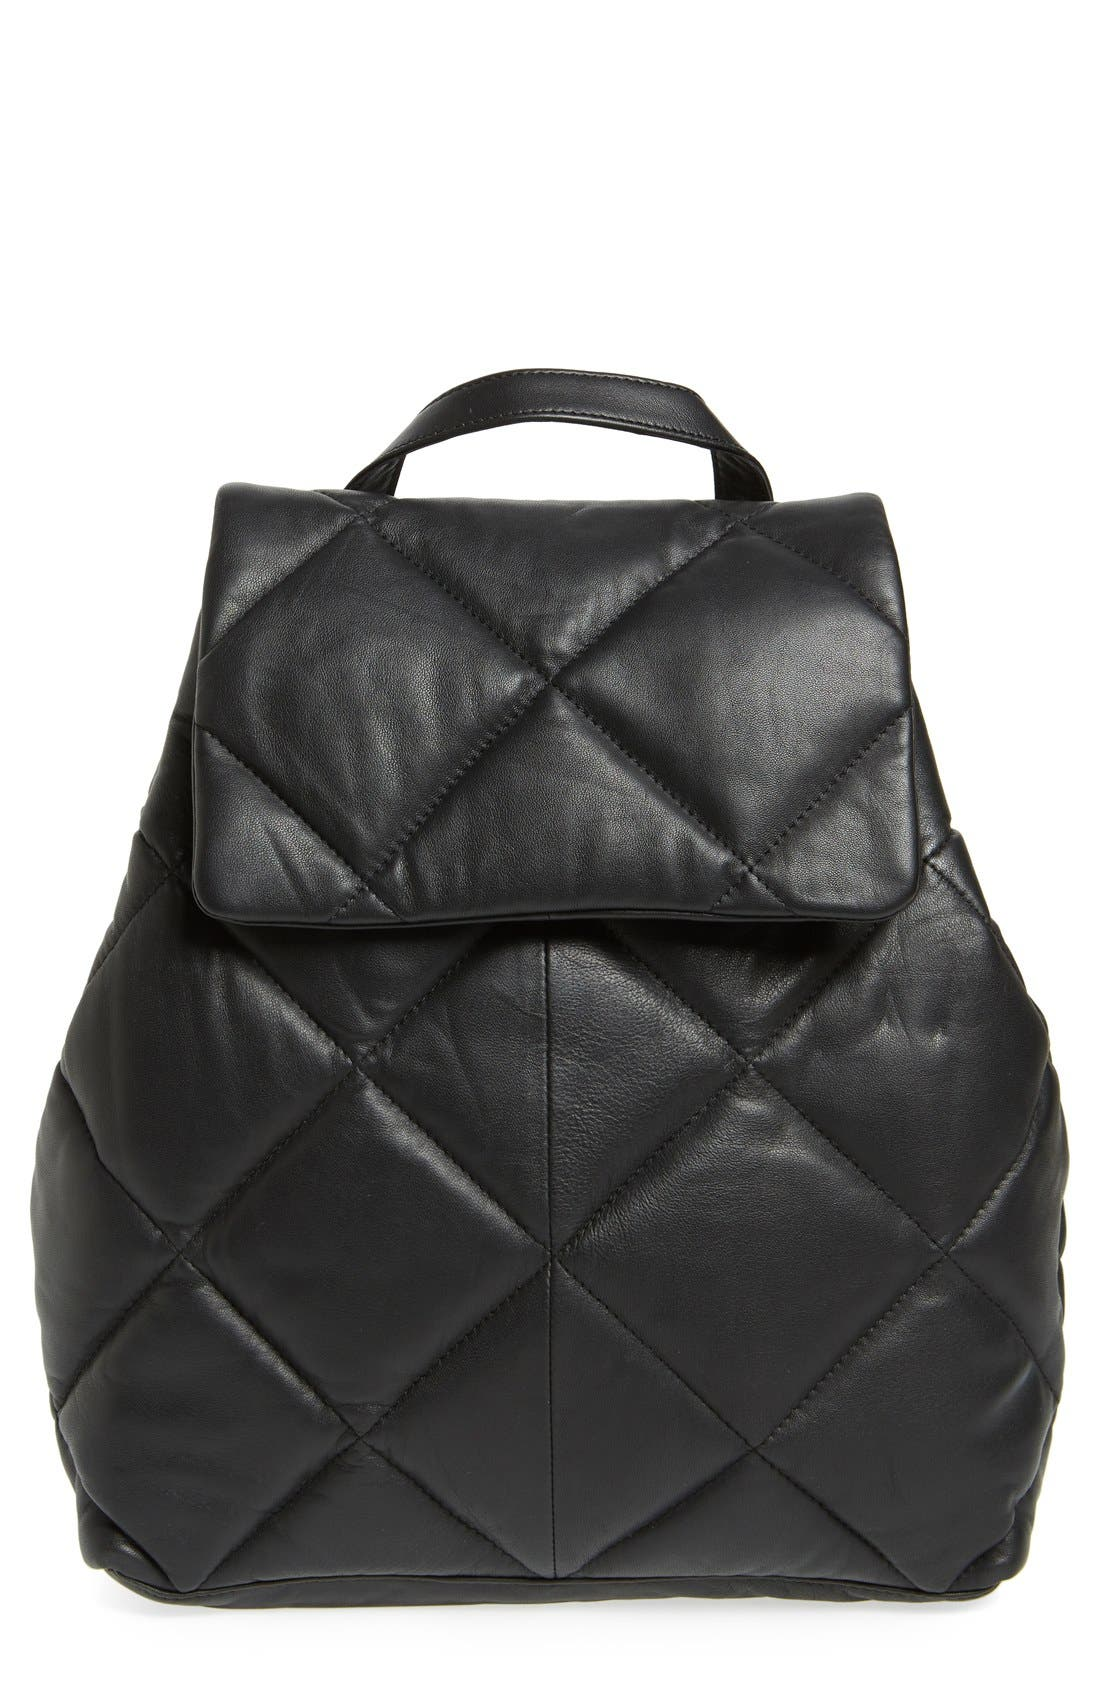 Main Image - Topshop Bryan Puffer Quilted Leather Backpack